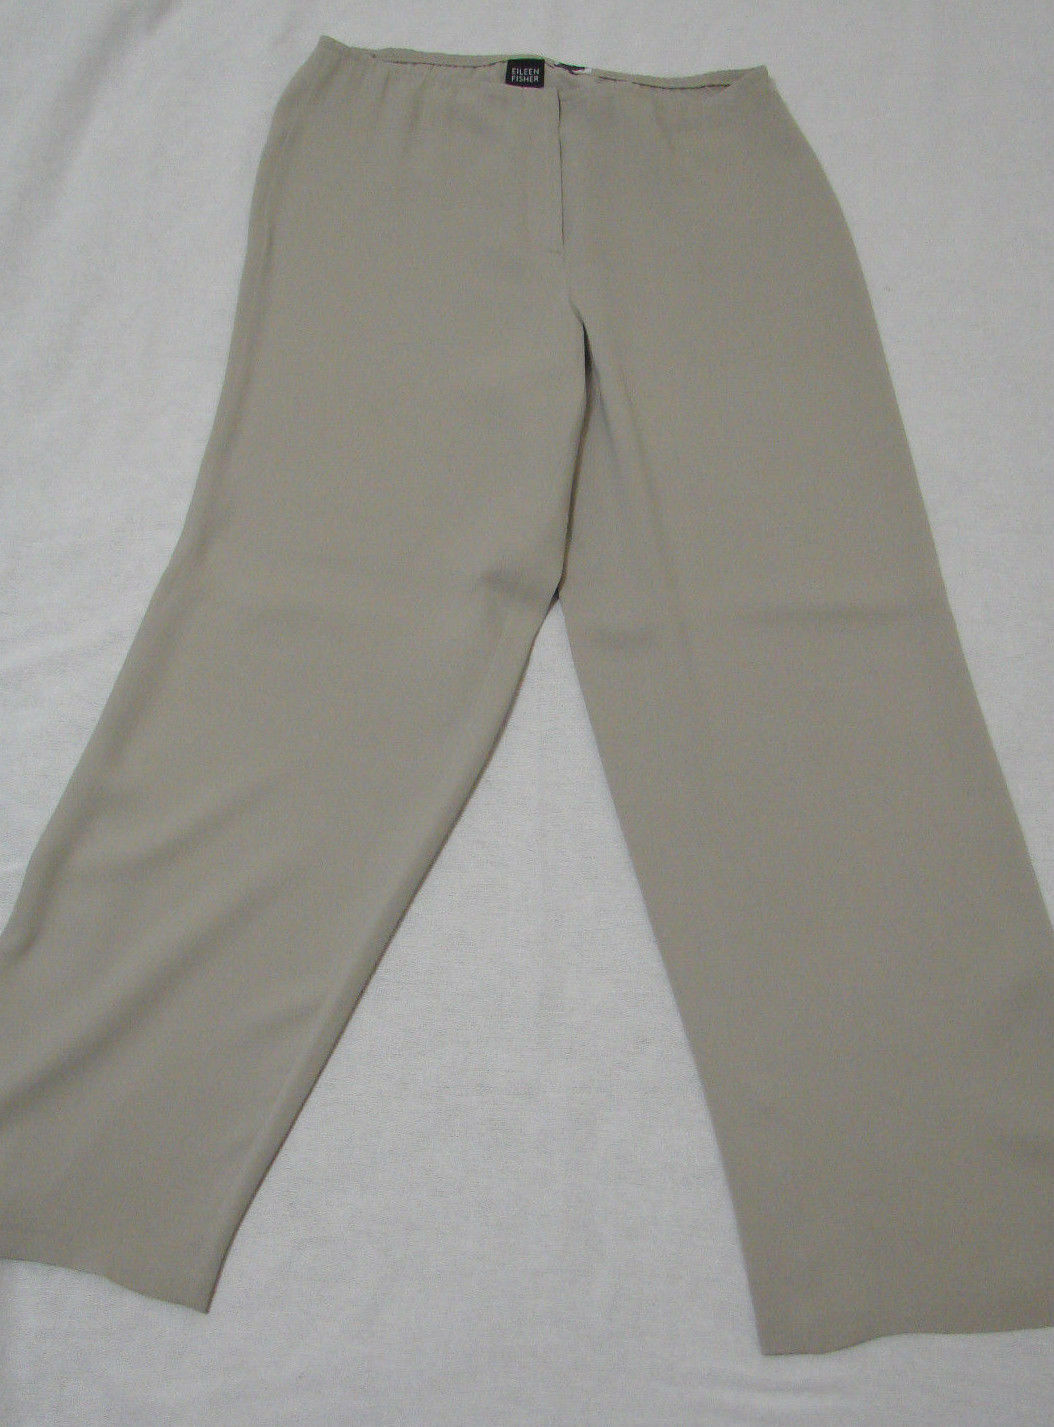 EILEEN FISHER Silk Beige Zip Front Wide Leg Slouch Pants NWOT M